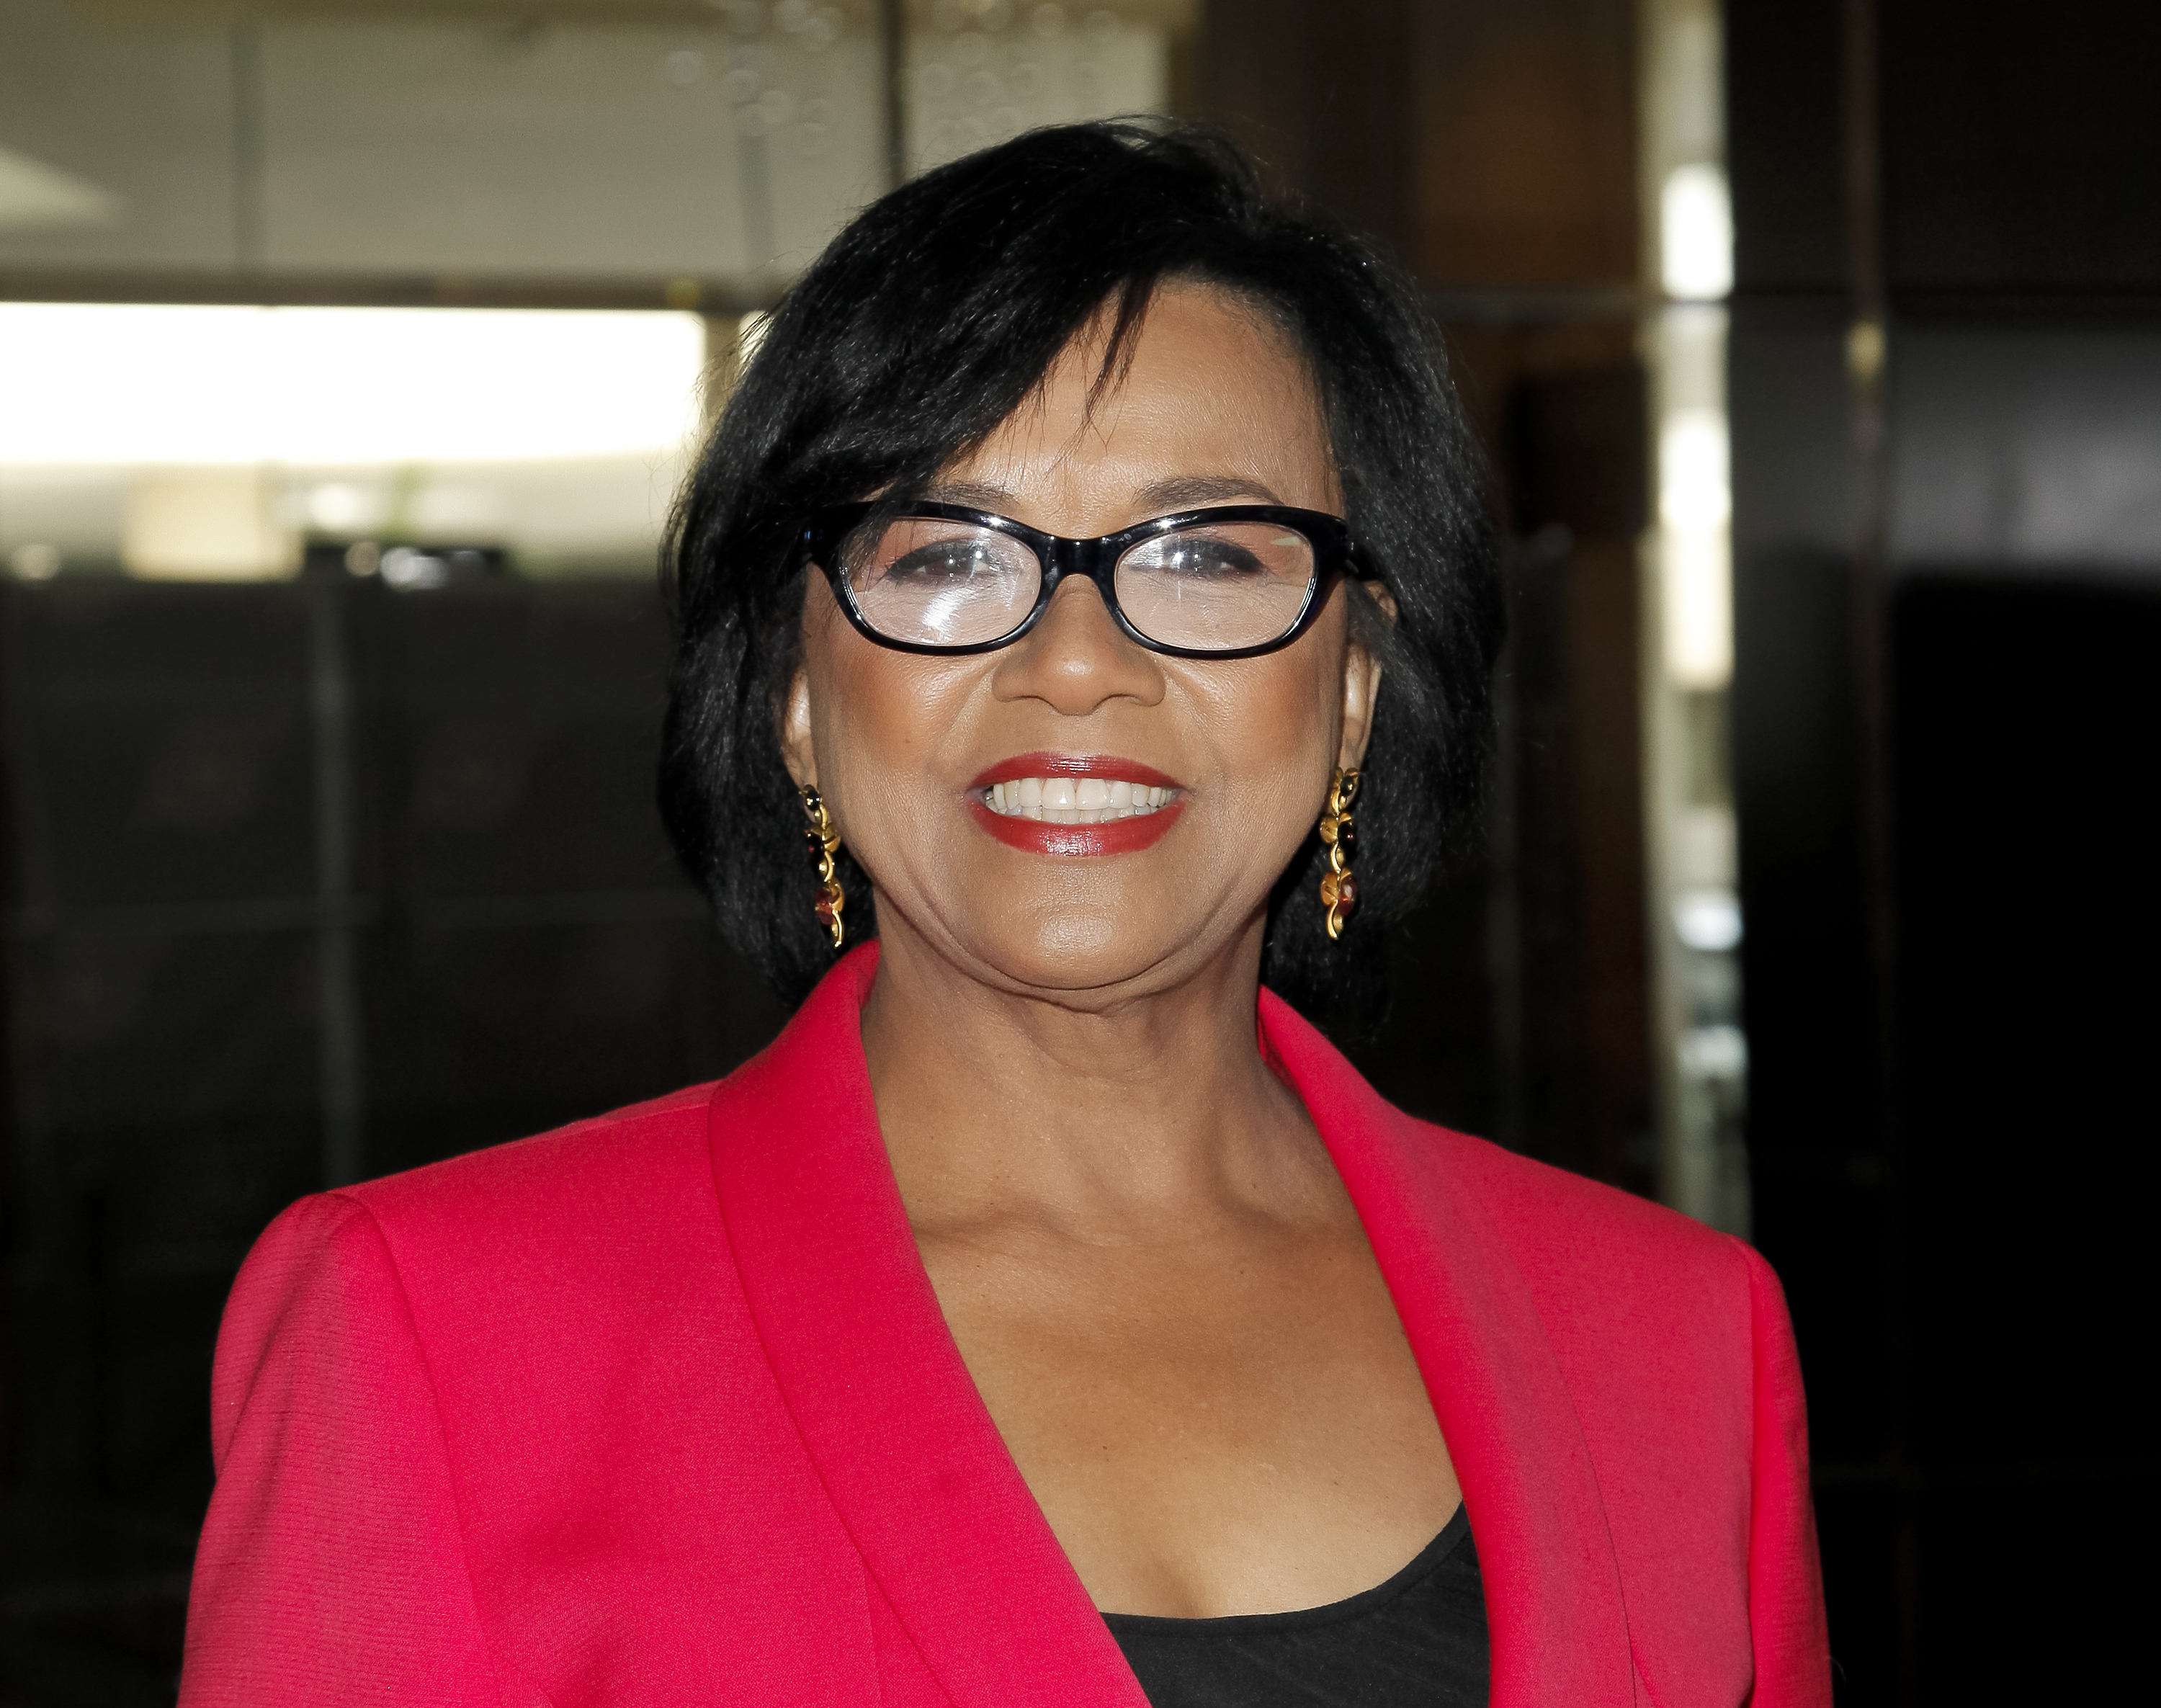 Cheryl Boone Isaacs attends the 52nd annual ICG Publicists Guild awards luncheon at The Beverly Hilton Hotel on Feb. 20, 2015 in Beverly Hills, California.